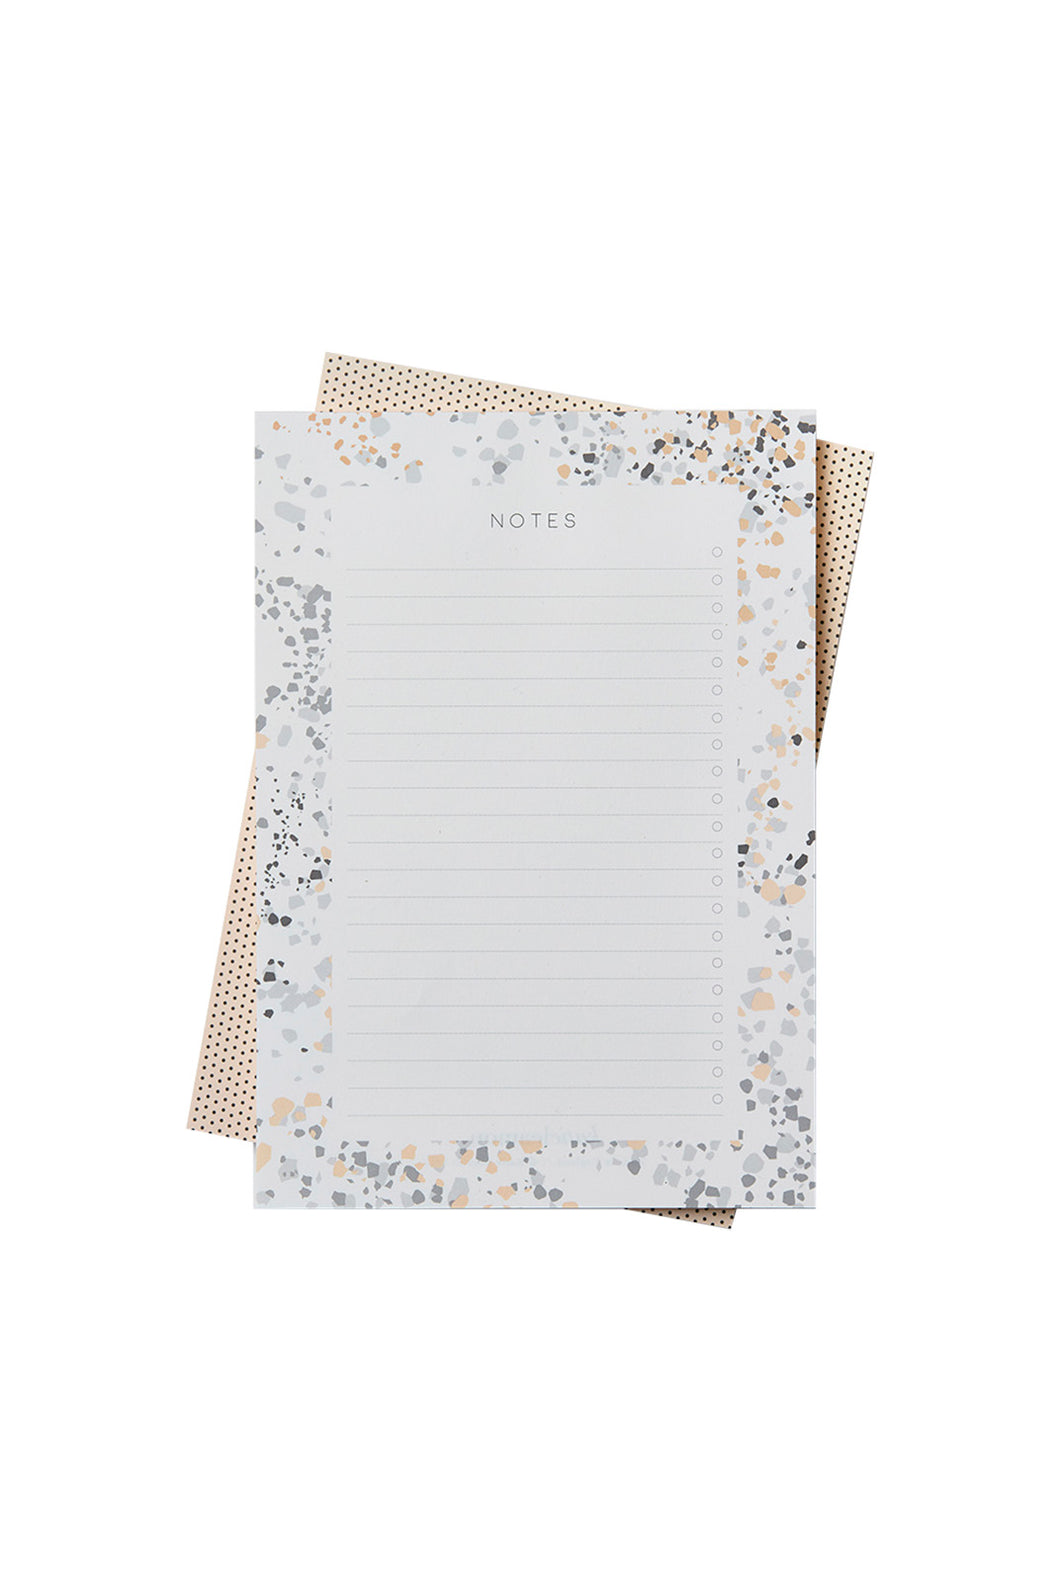 Katie Leamon - Notepad - Ruled - B5 - Terazza